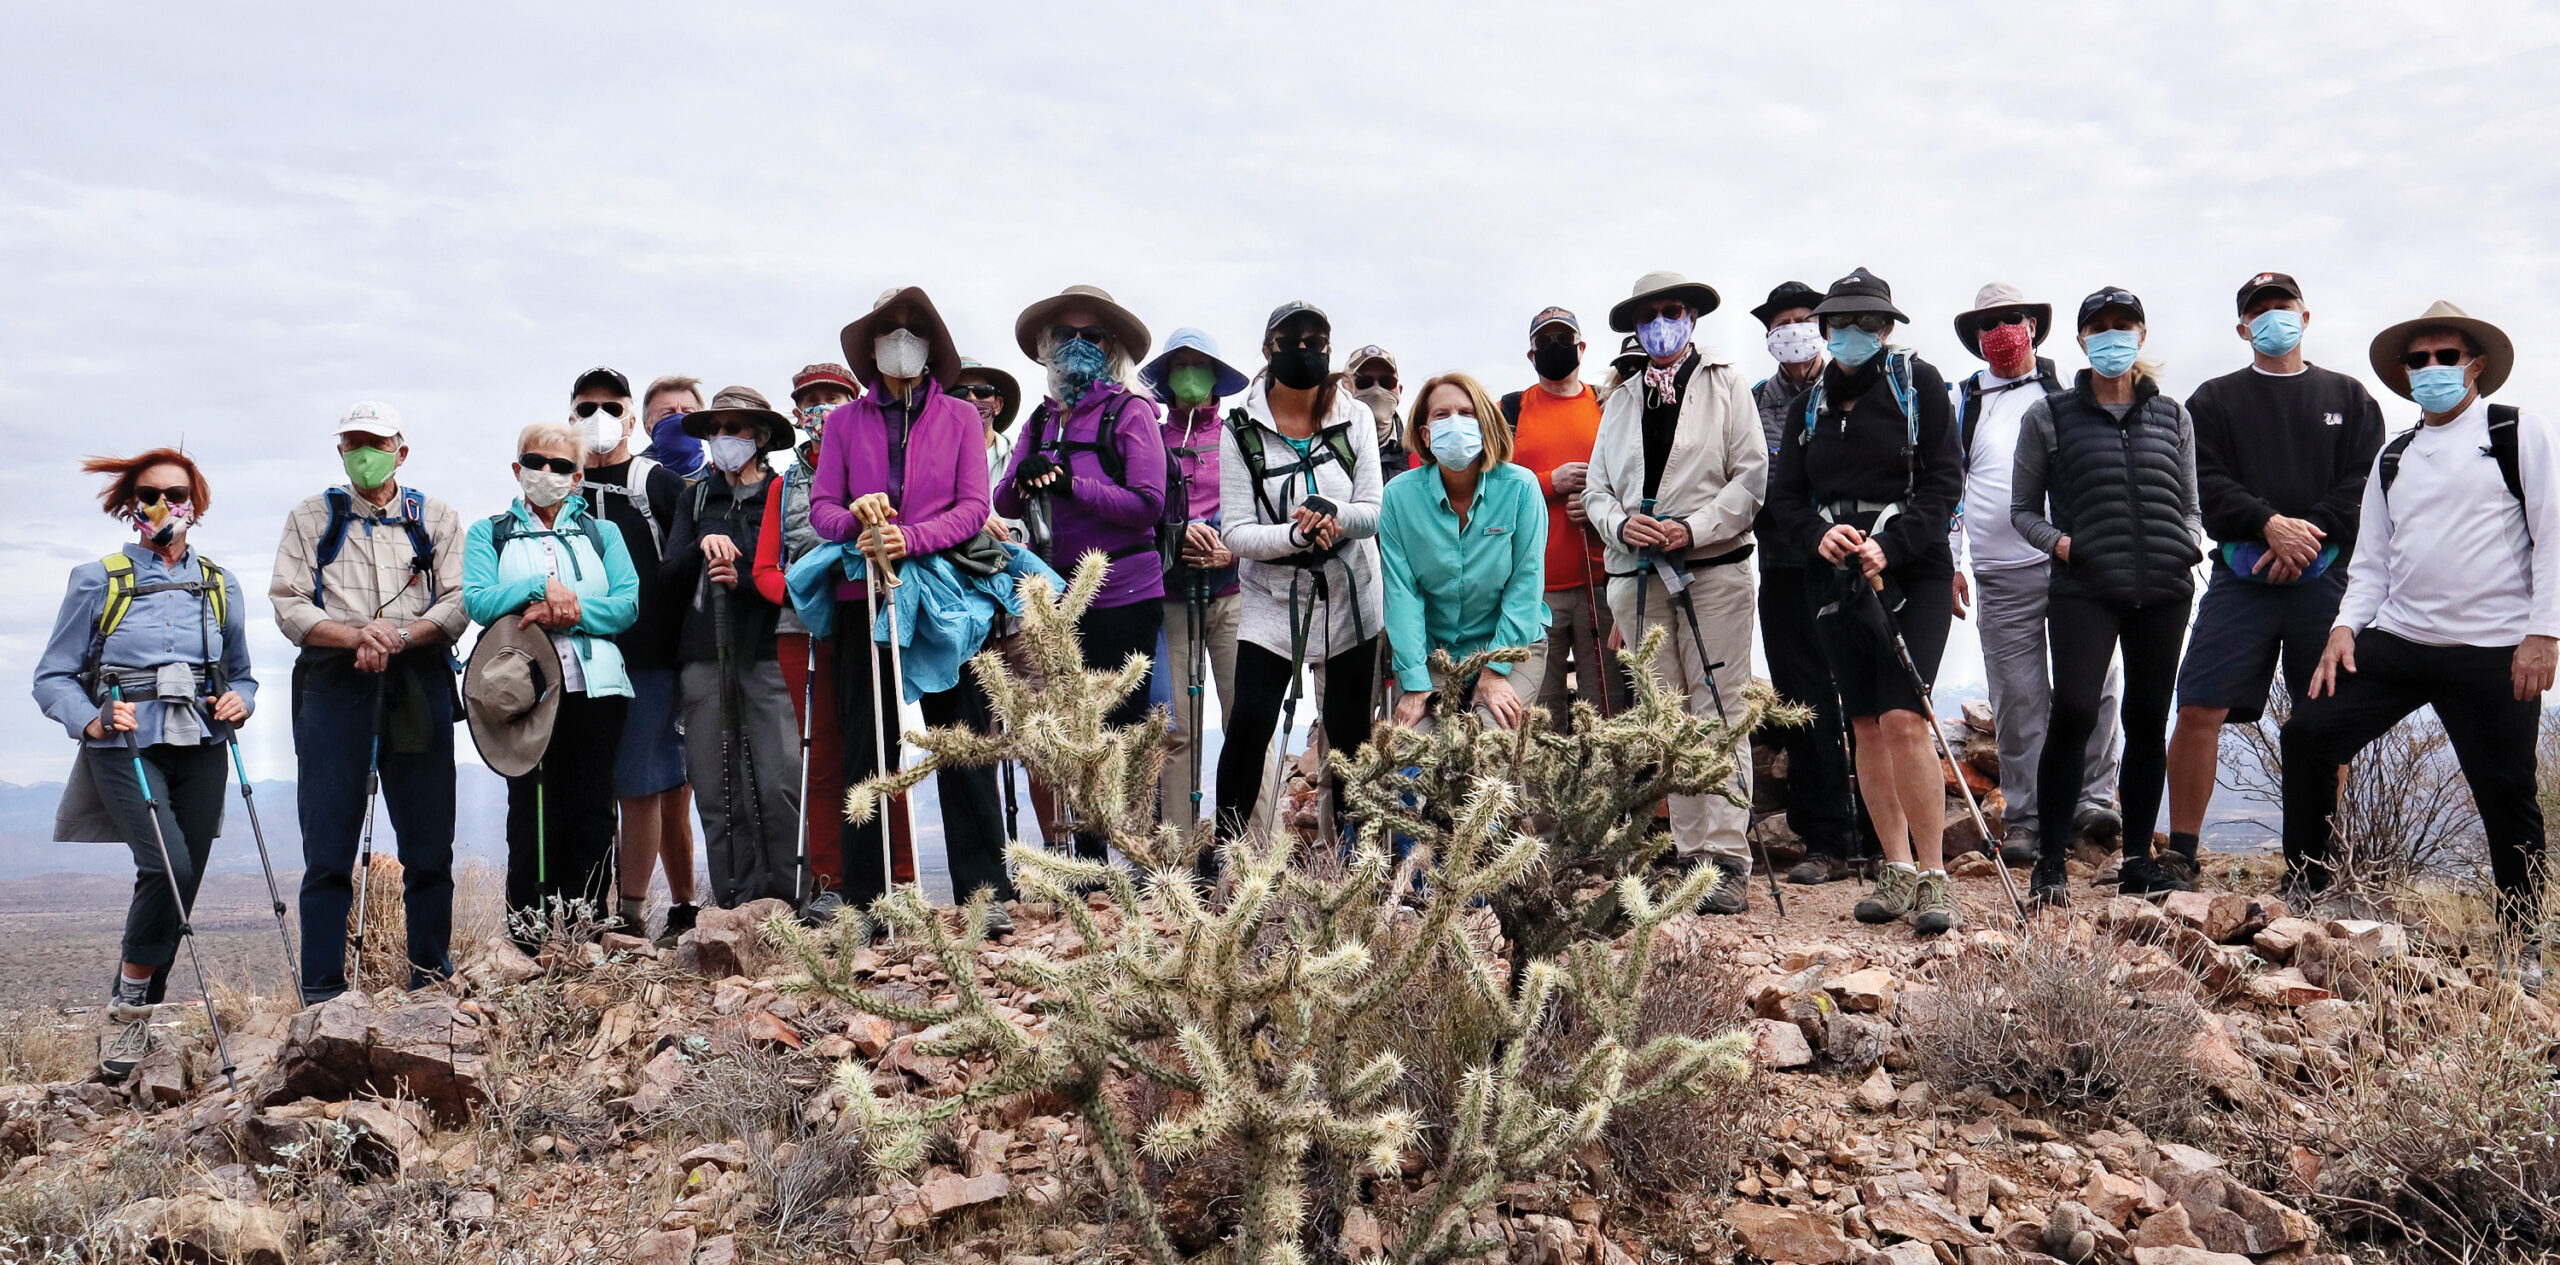 Twenty-four Mellow Level hikers enjoying the Promenade, Upper and Lower Sonoran, and Overlook Trails at Adero Canyon in Fountain Hills this past February.